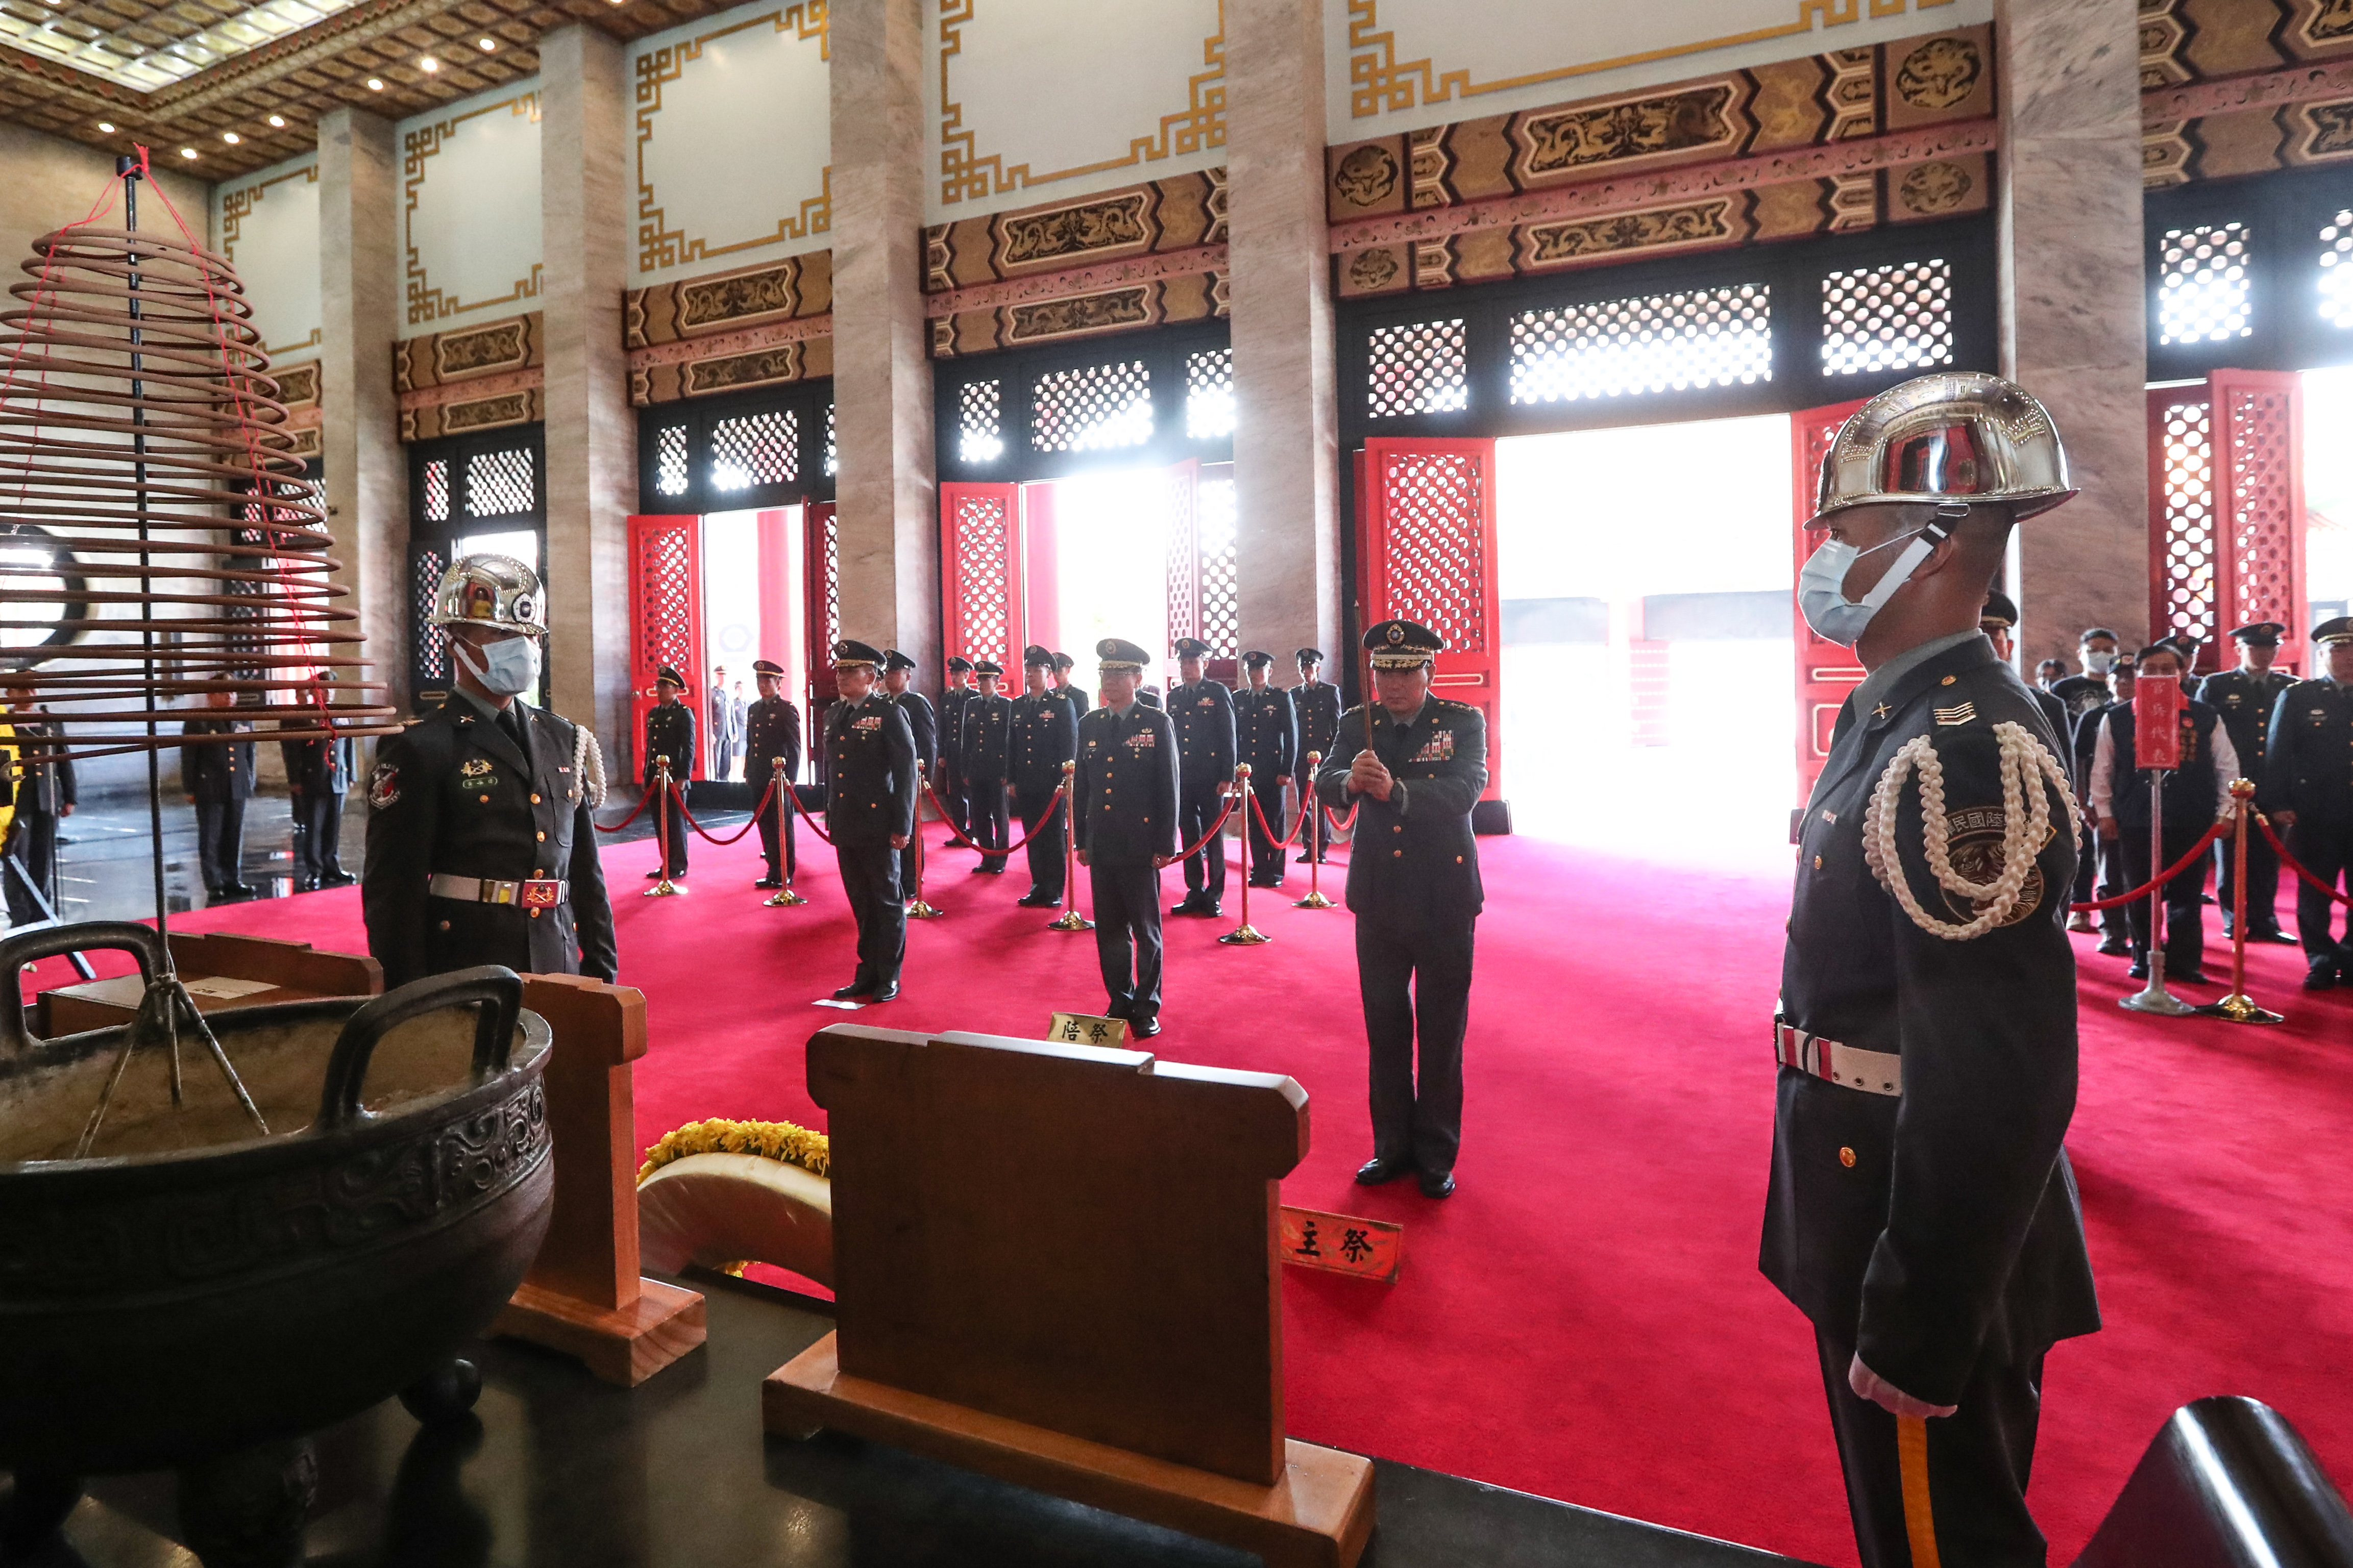 Sacrificed Service Members Enshrined to Martyrs' Shrine for Their Gallant Deeds